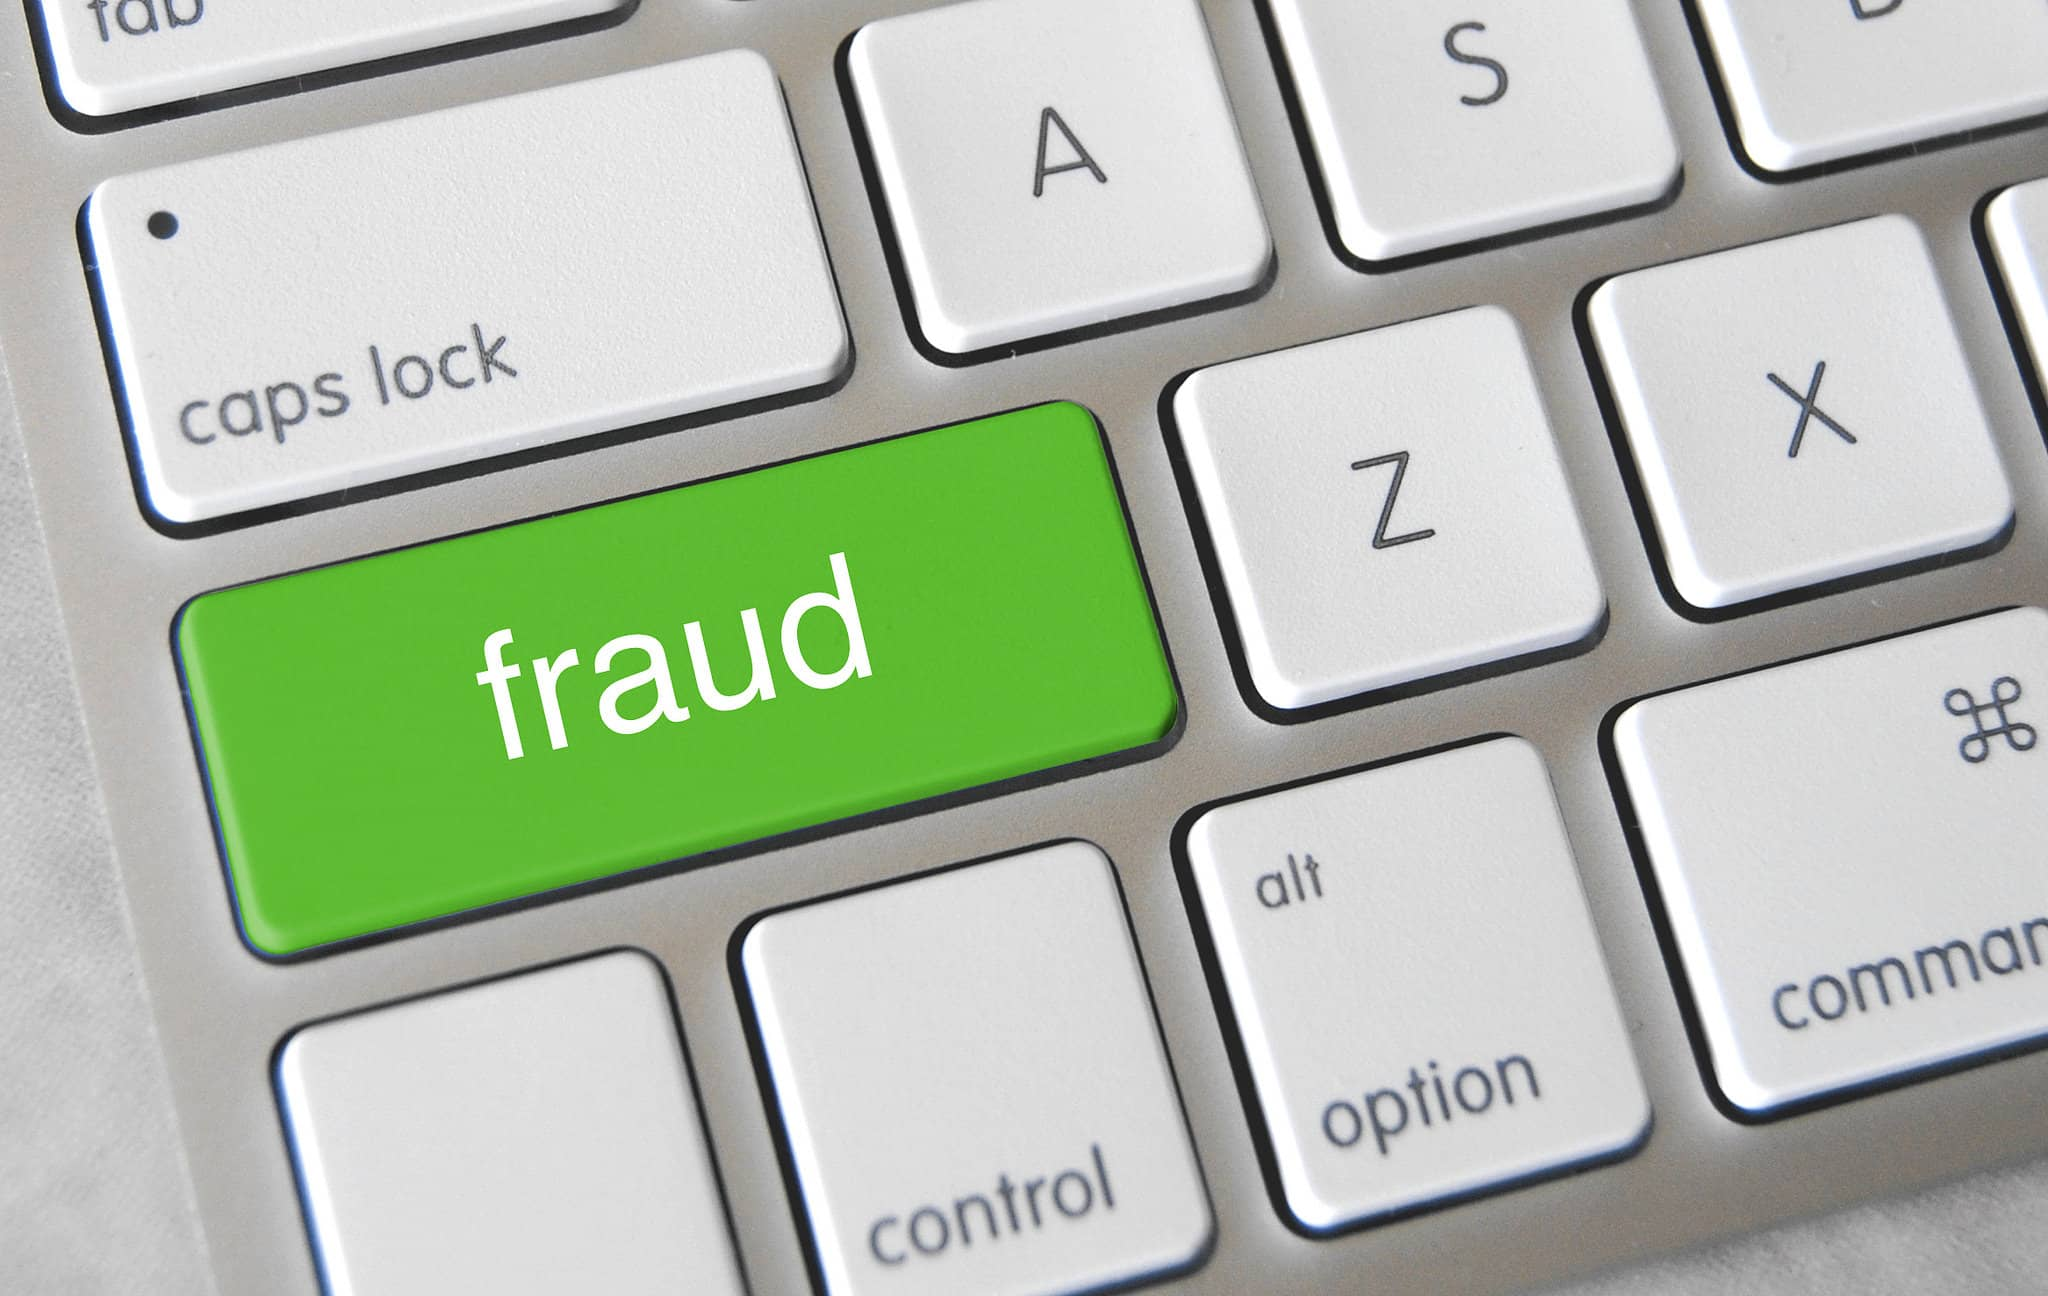 Spotting and avoid common scams, fraud and schemes online and offline